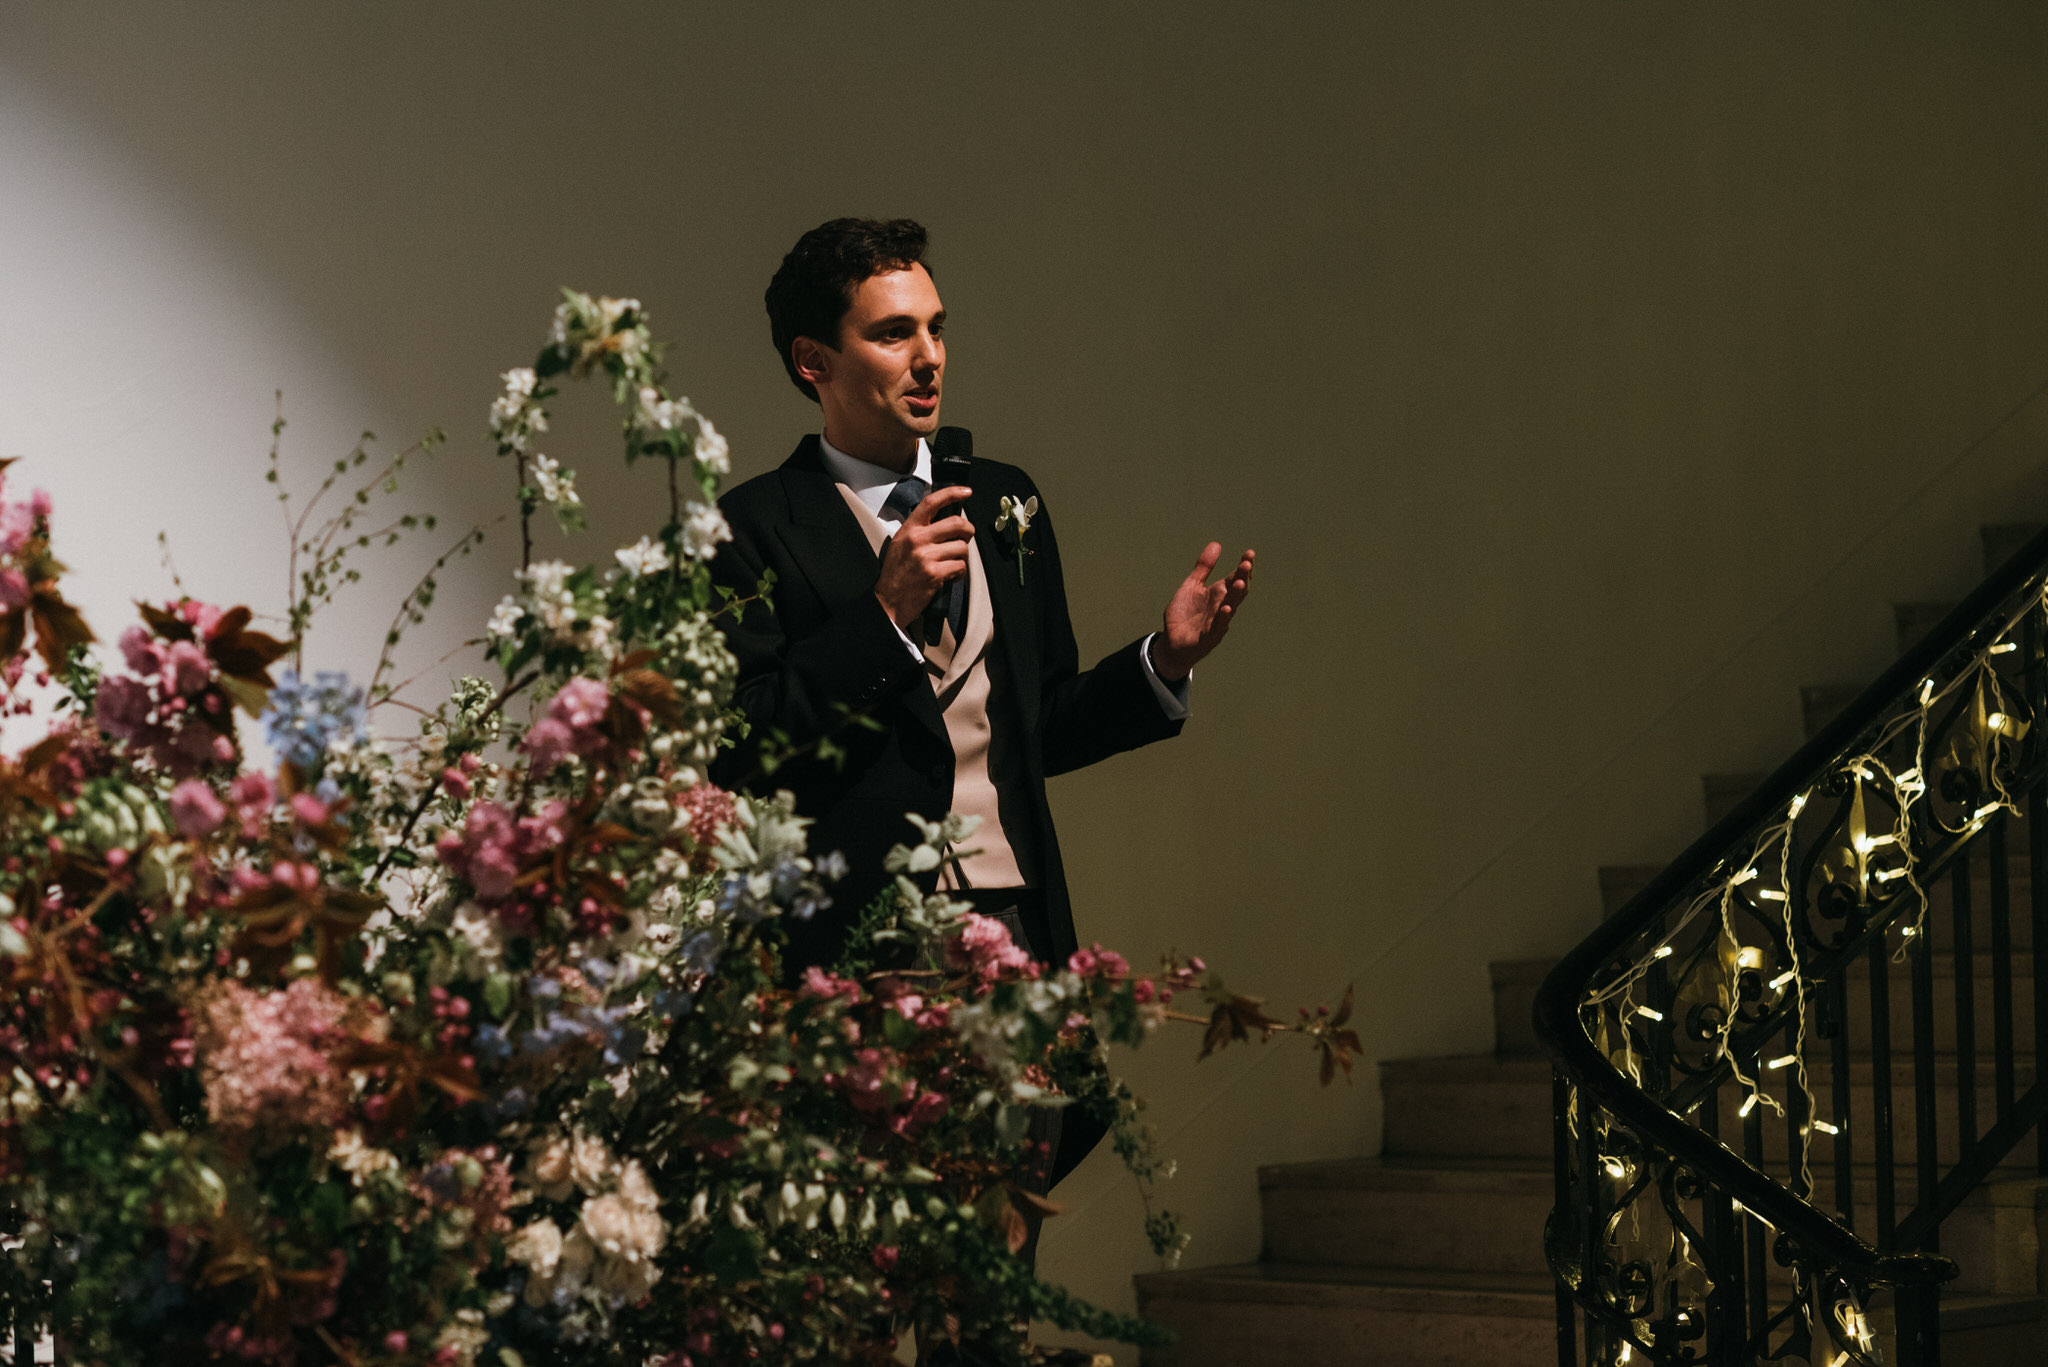 Speech at Sunbeam studios wedding